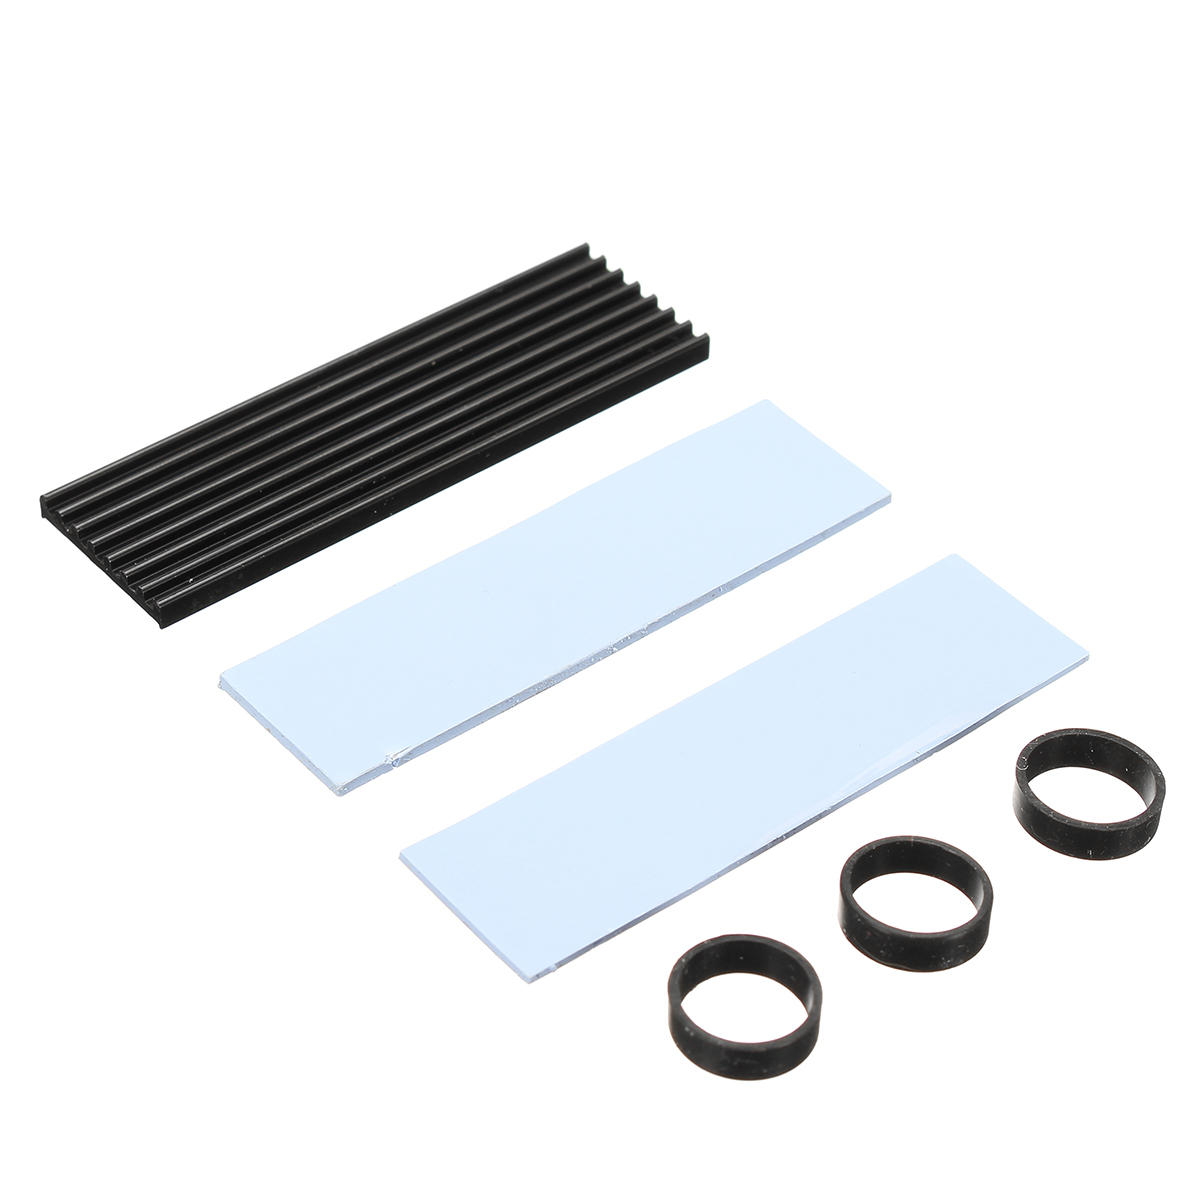 M.2 NGFF NVMe 2280 PCIE SSD Passive Cooling Aluminum Fins Heat Sink Thermal Pad